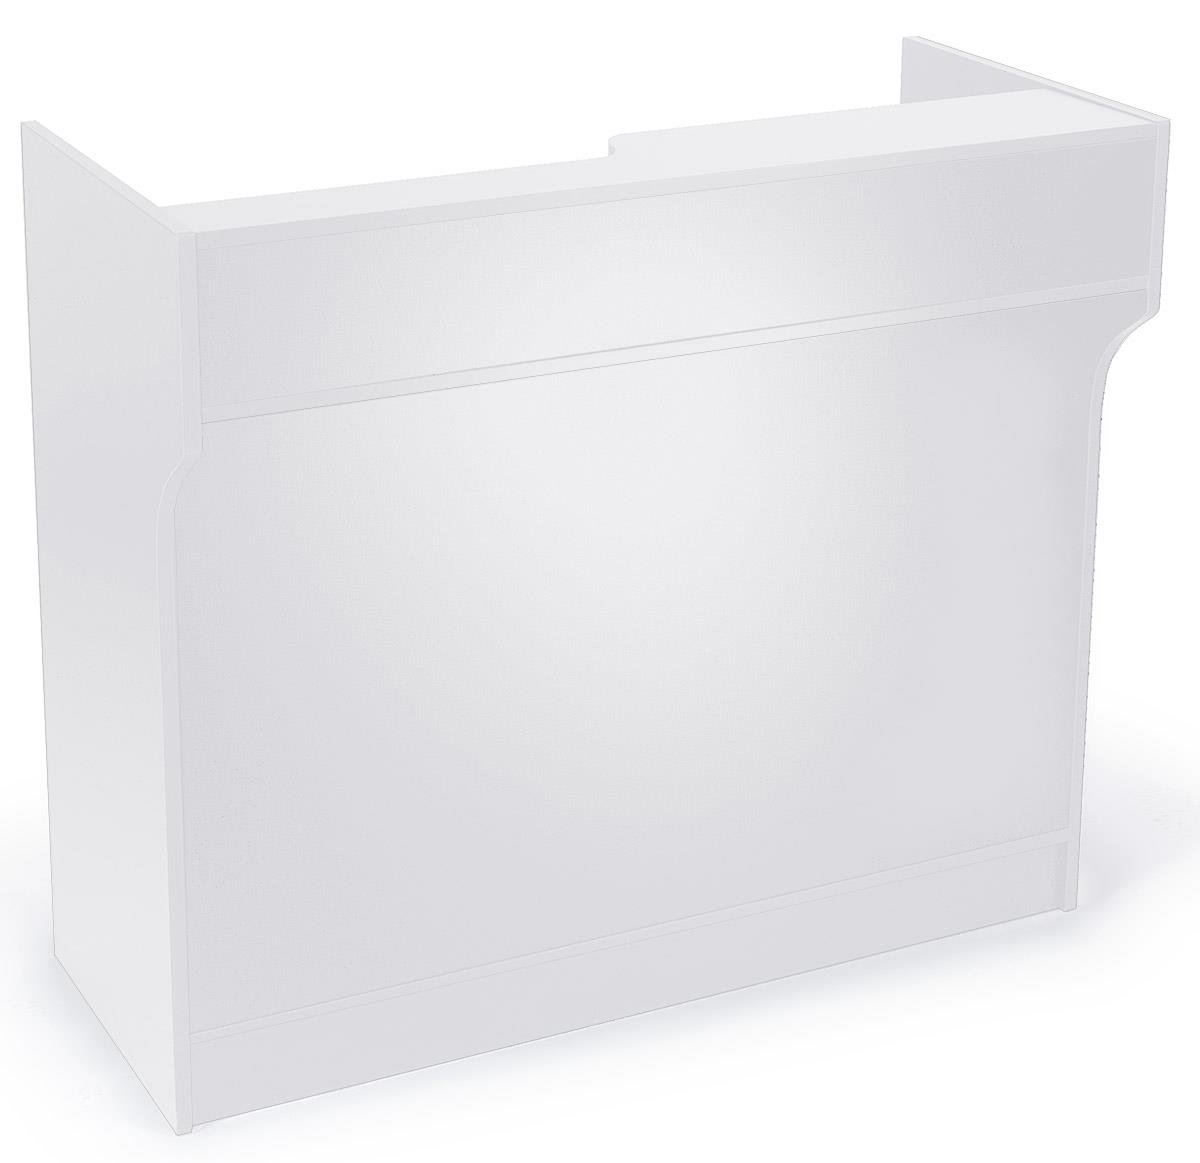 "Displays2go 48"" Cash Wrap with Storage, Laminated Particle Board, Shelves, Drawer – White Finish (MRCLT48WH)"